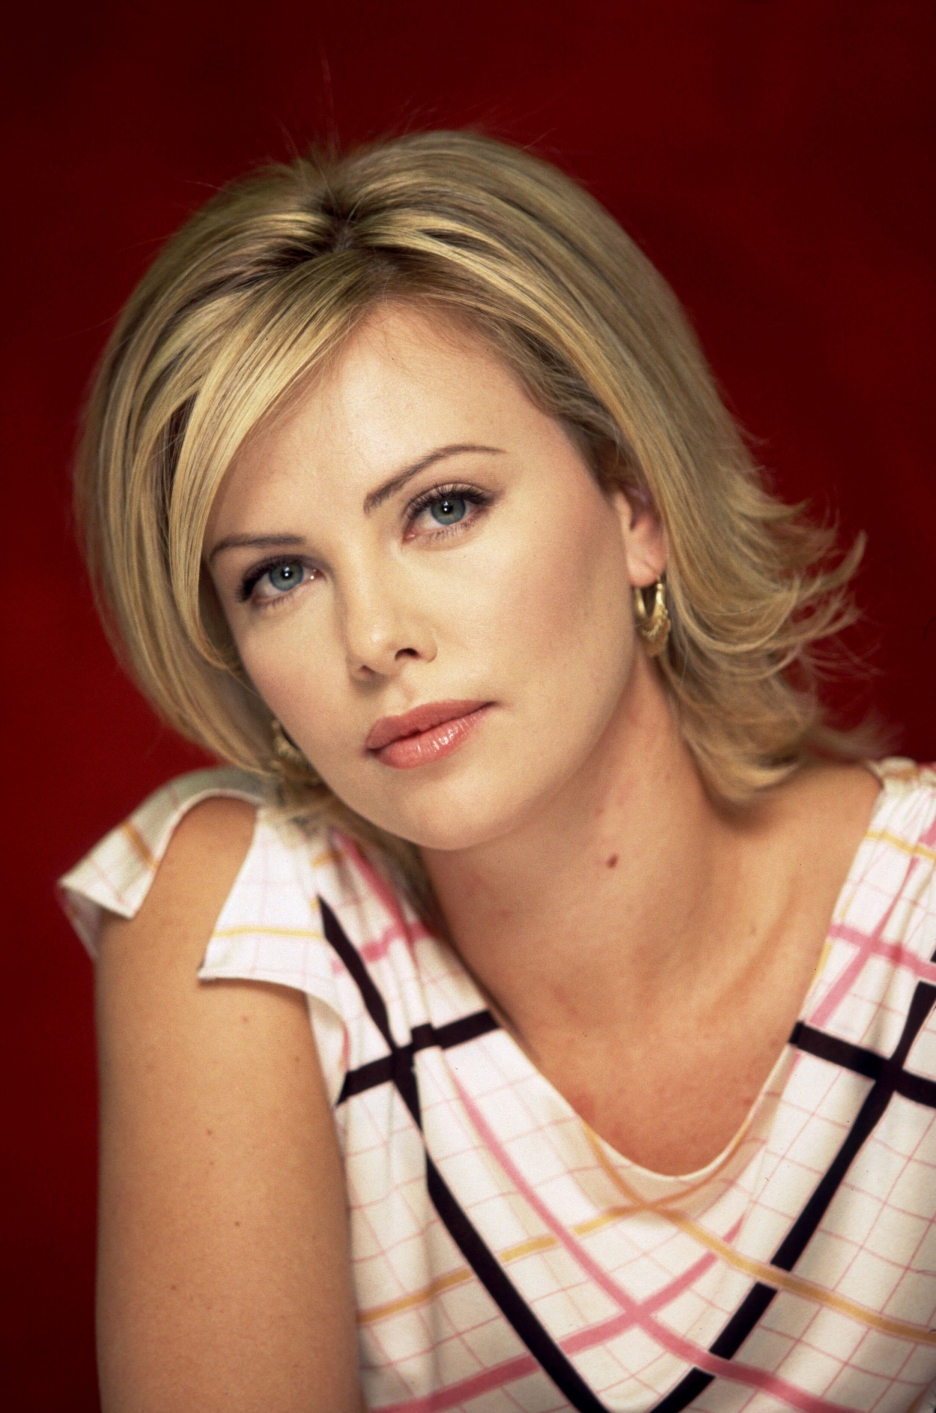 Charlize Theron Date Of Birth 7 August 1975